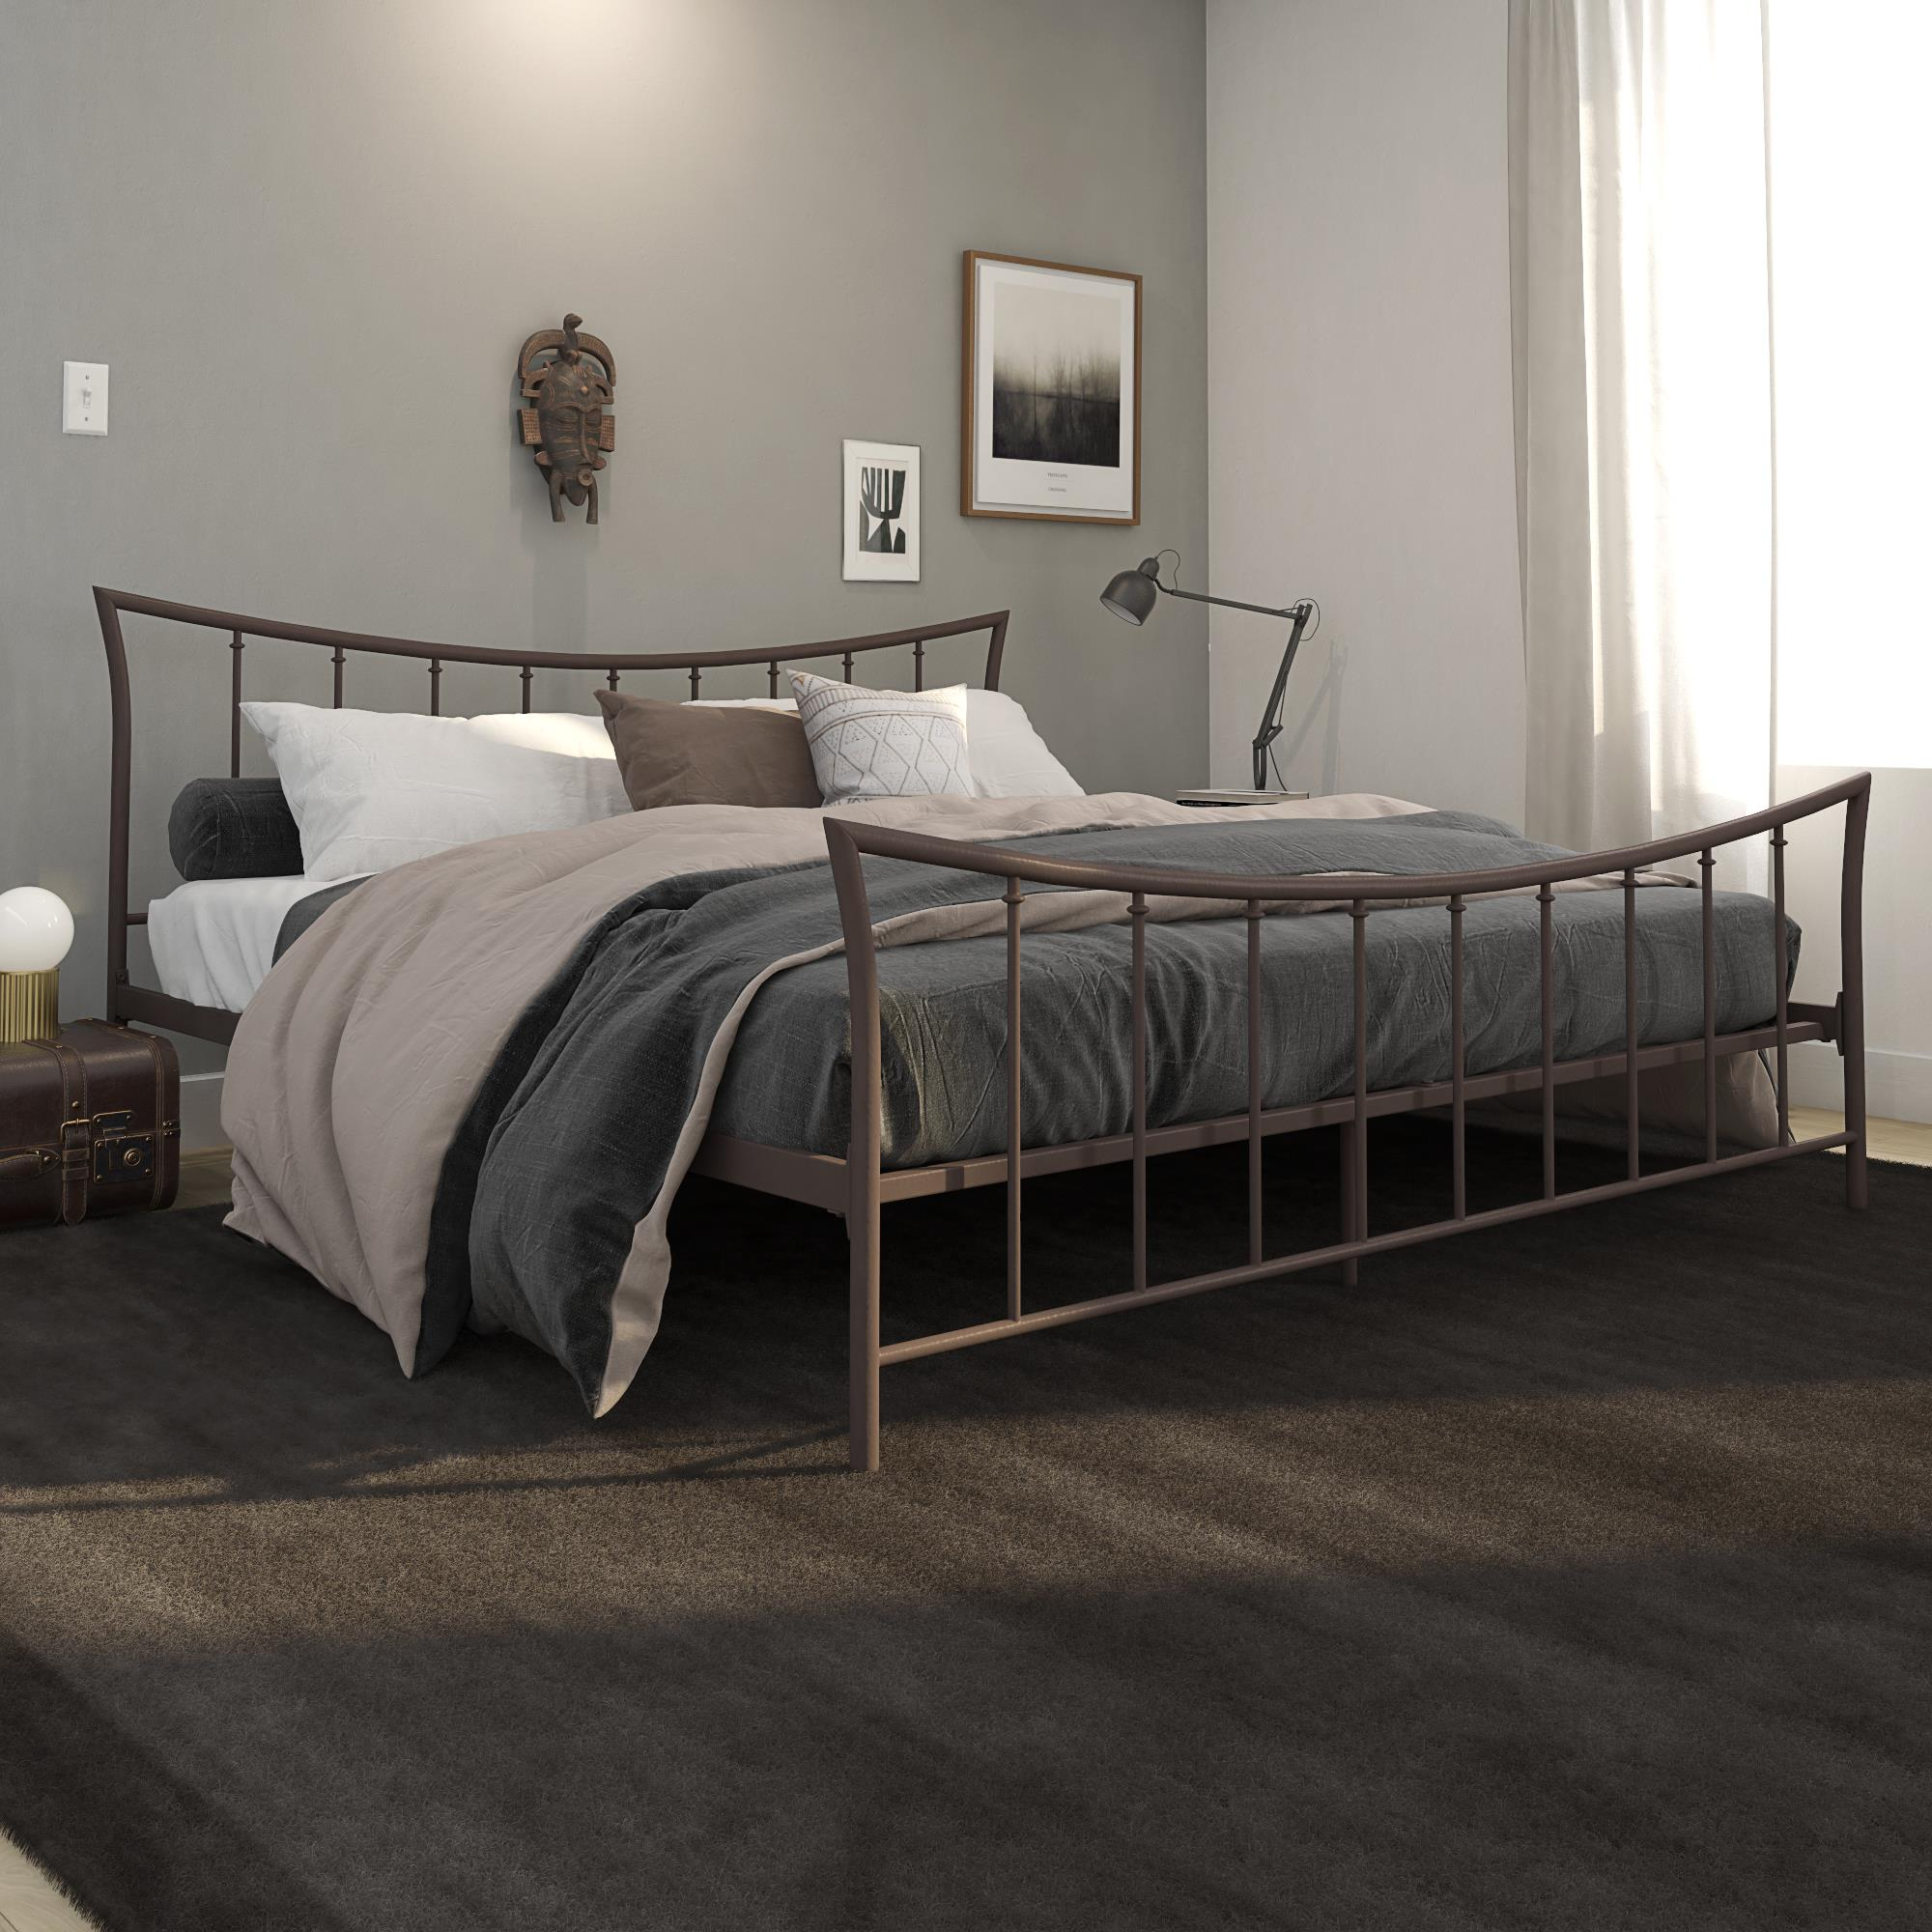 Brushed Bronze Sturdy Metal King Size Bed Frame Curved